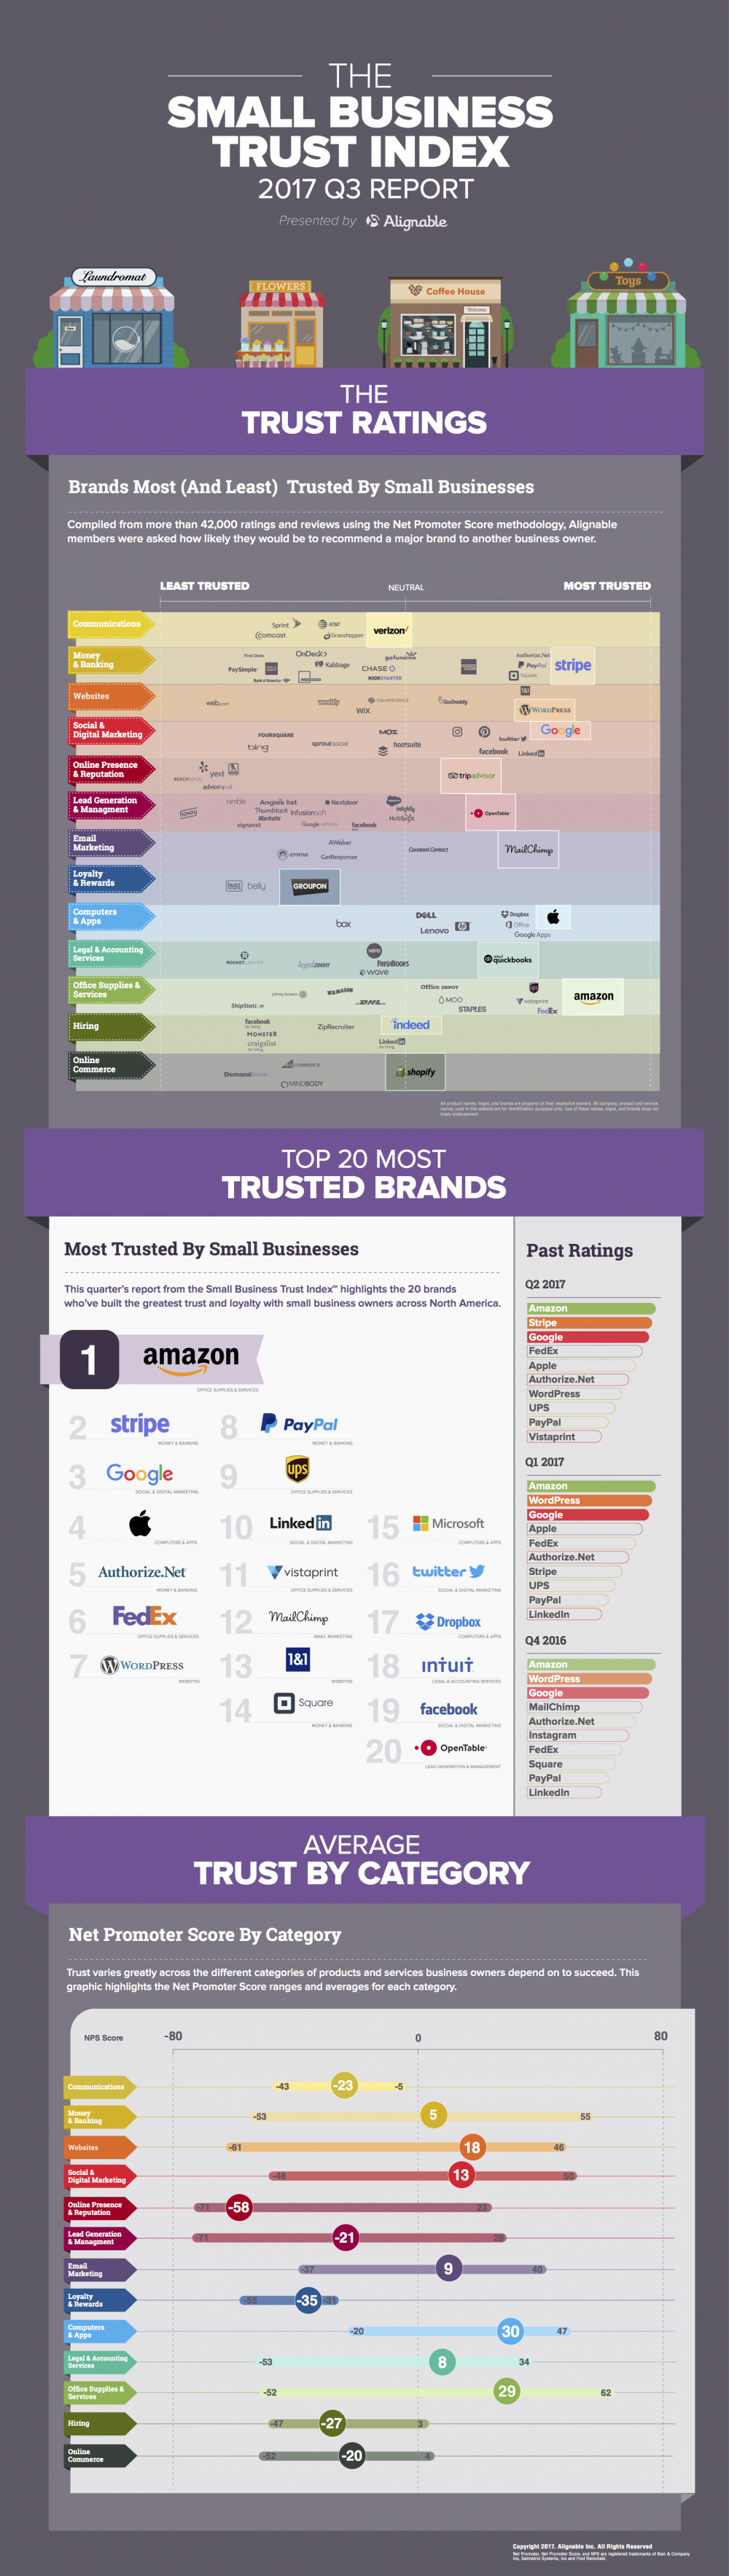 Alignable Q3 2017 Trust Index - The Brands Small Businesses Trust the Most